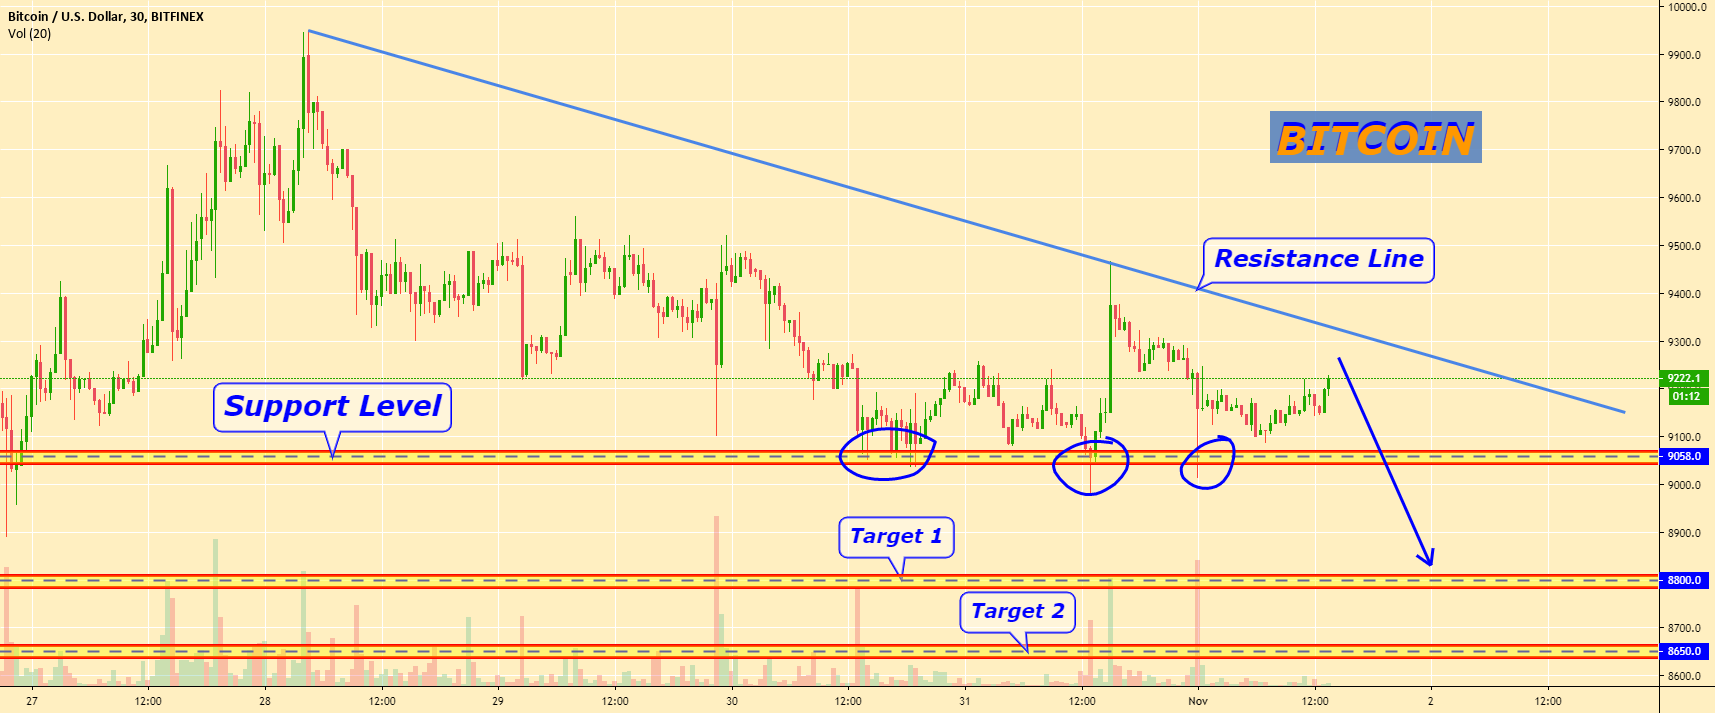 BITCOIN price near Support Level, Trading Plan for BITFINEX:BTCUSD by Moiseiev_Yurii